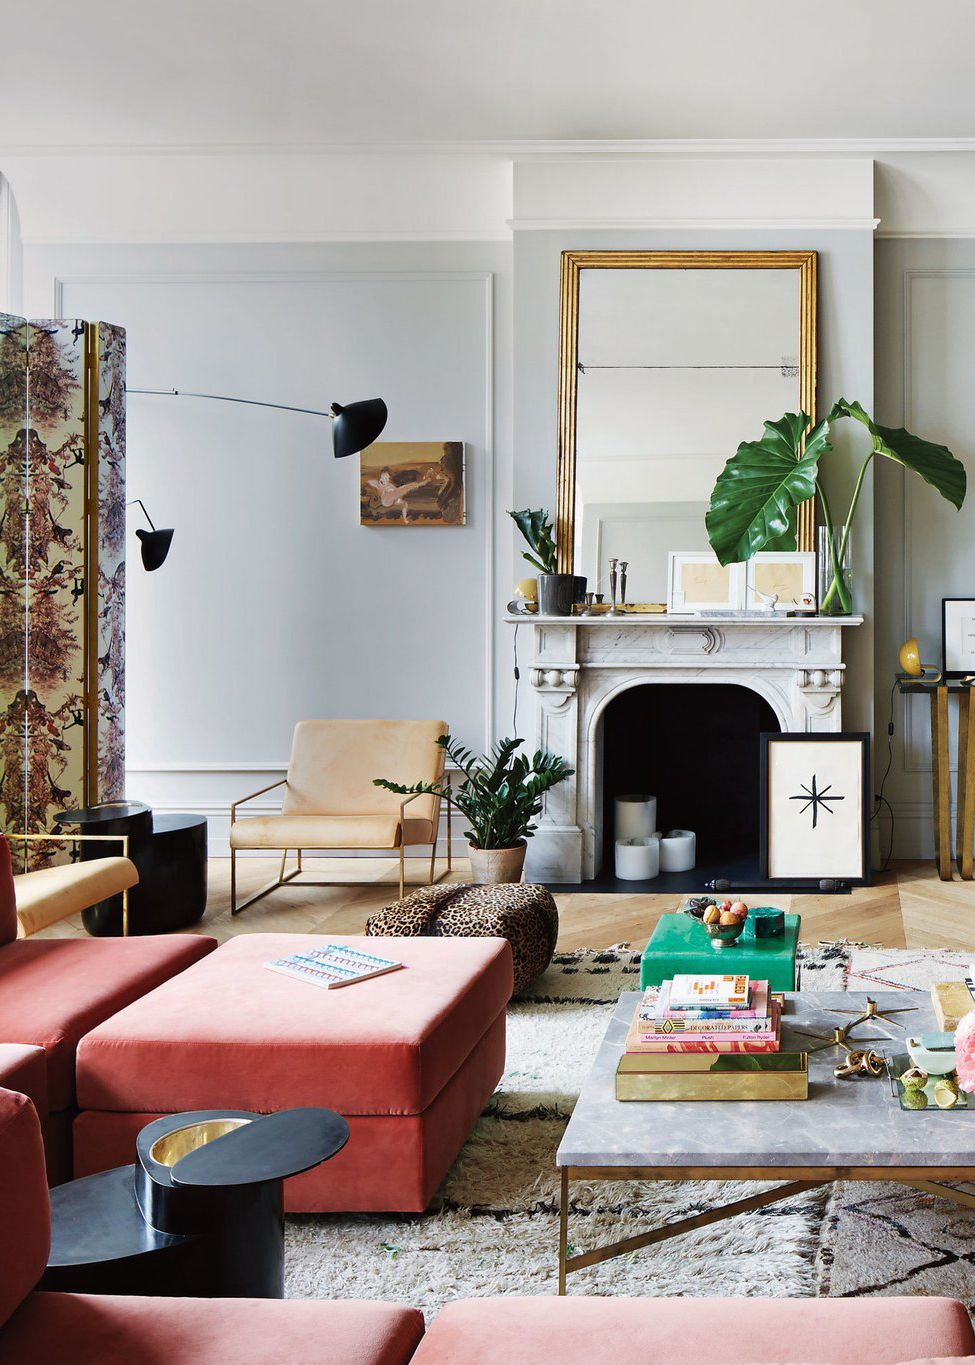 Pink Velvet Modular Sofa In A Classic Living Room | Jenna Lyons House Tour  On Coco